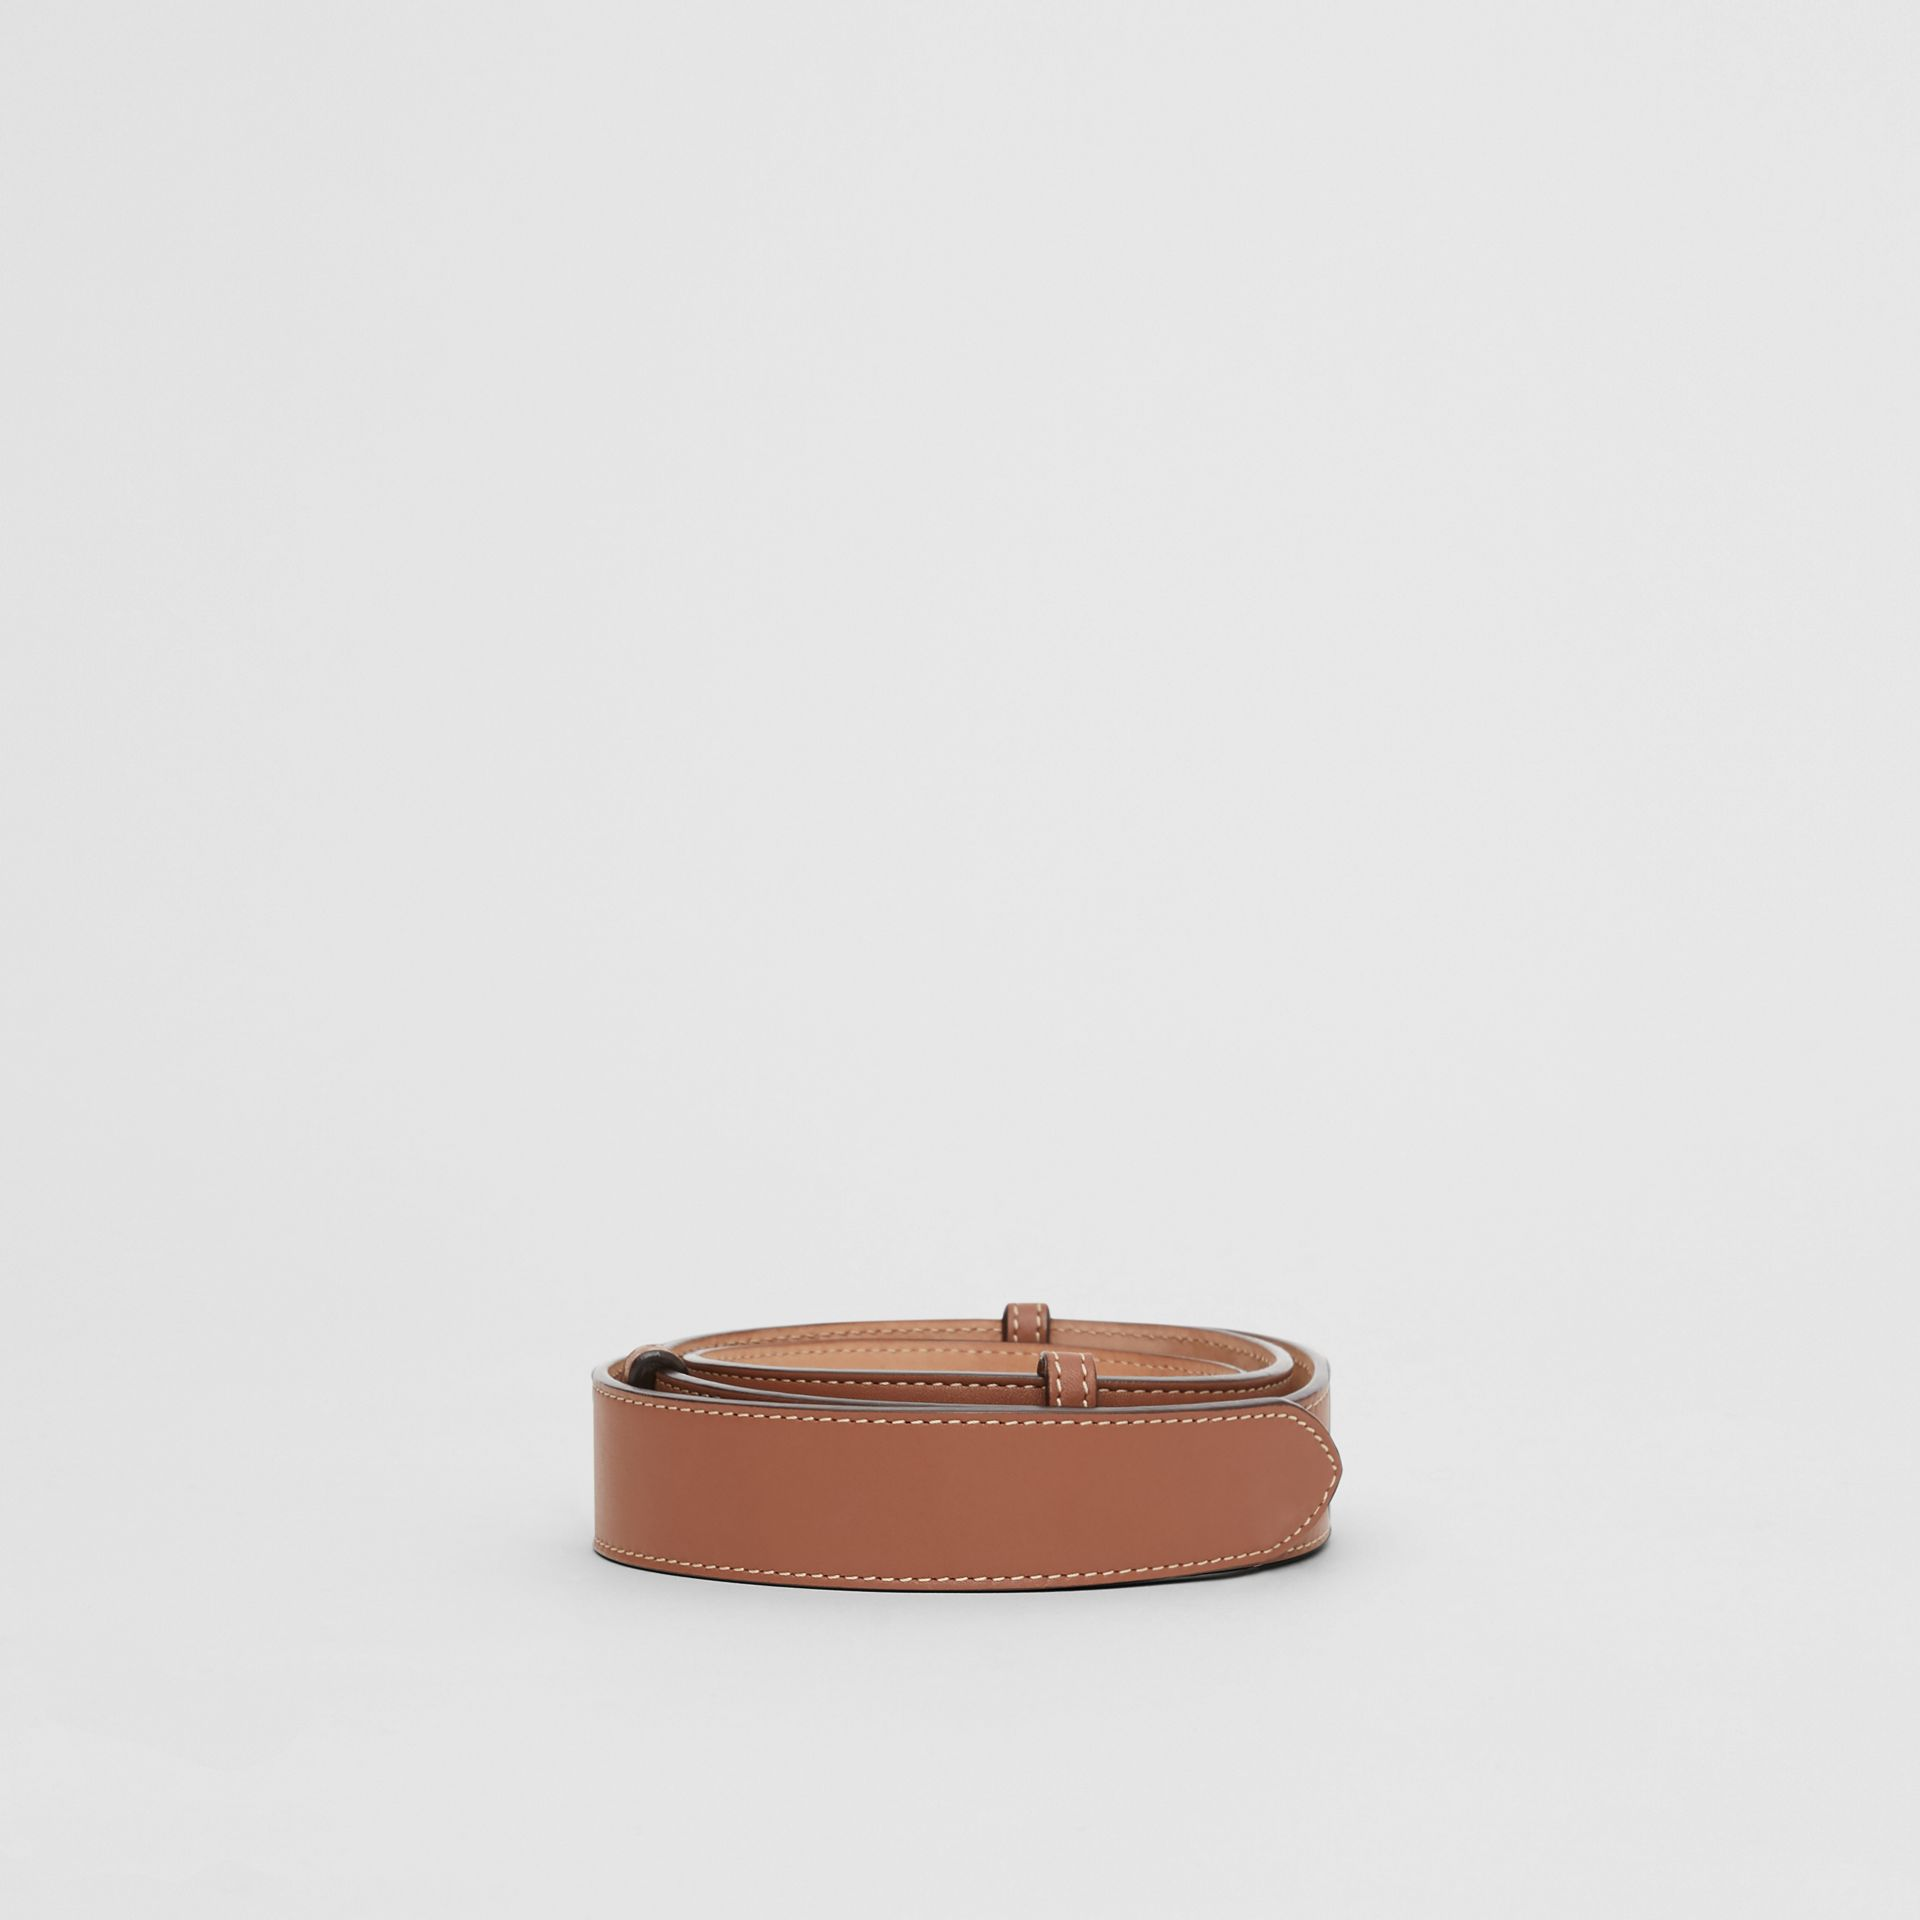 Triple Stud Leather Belt in Malt Brown - Women | Burberry Australia - gallery image 4